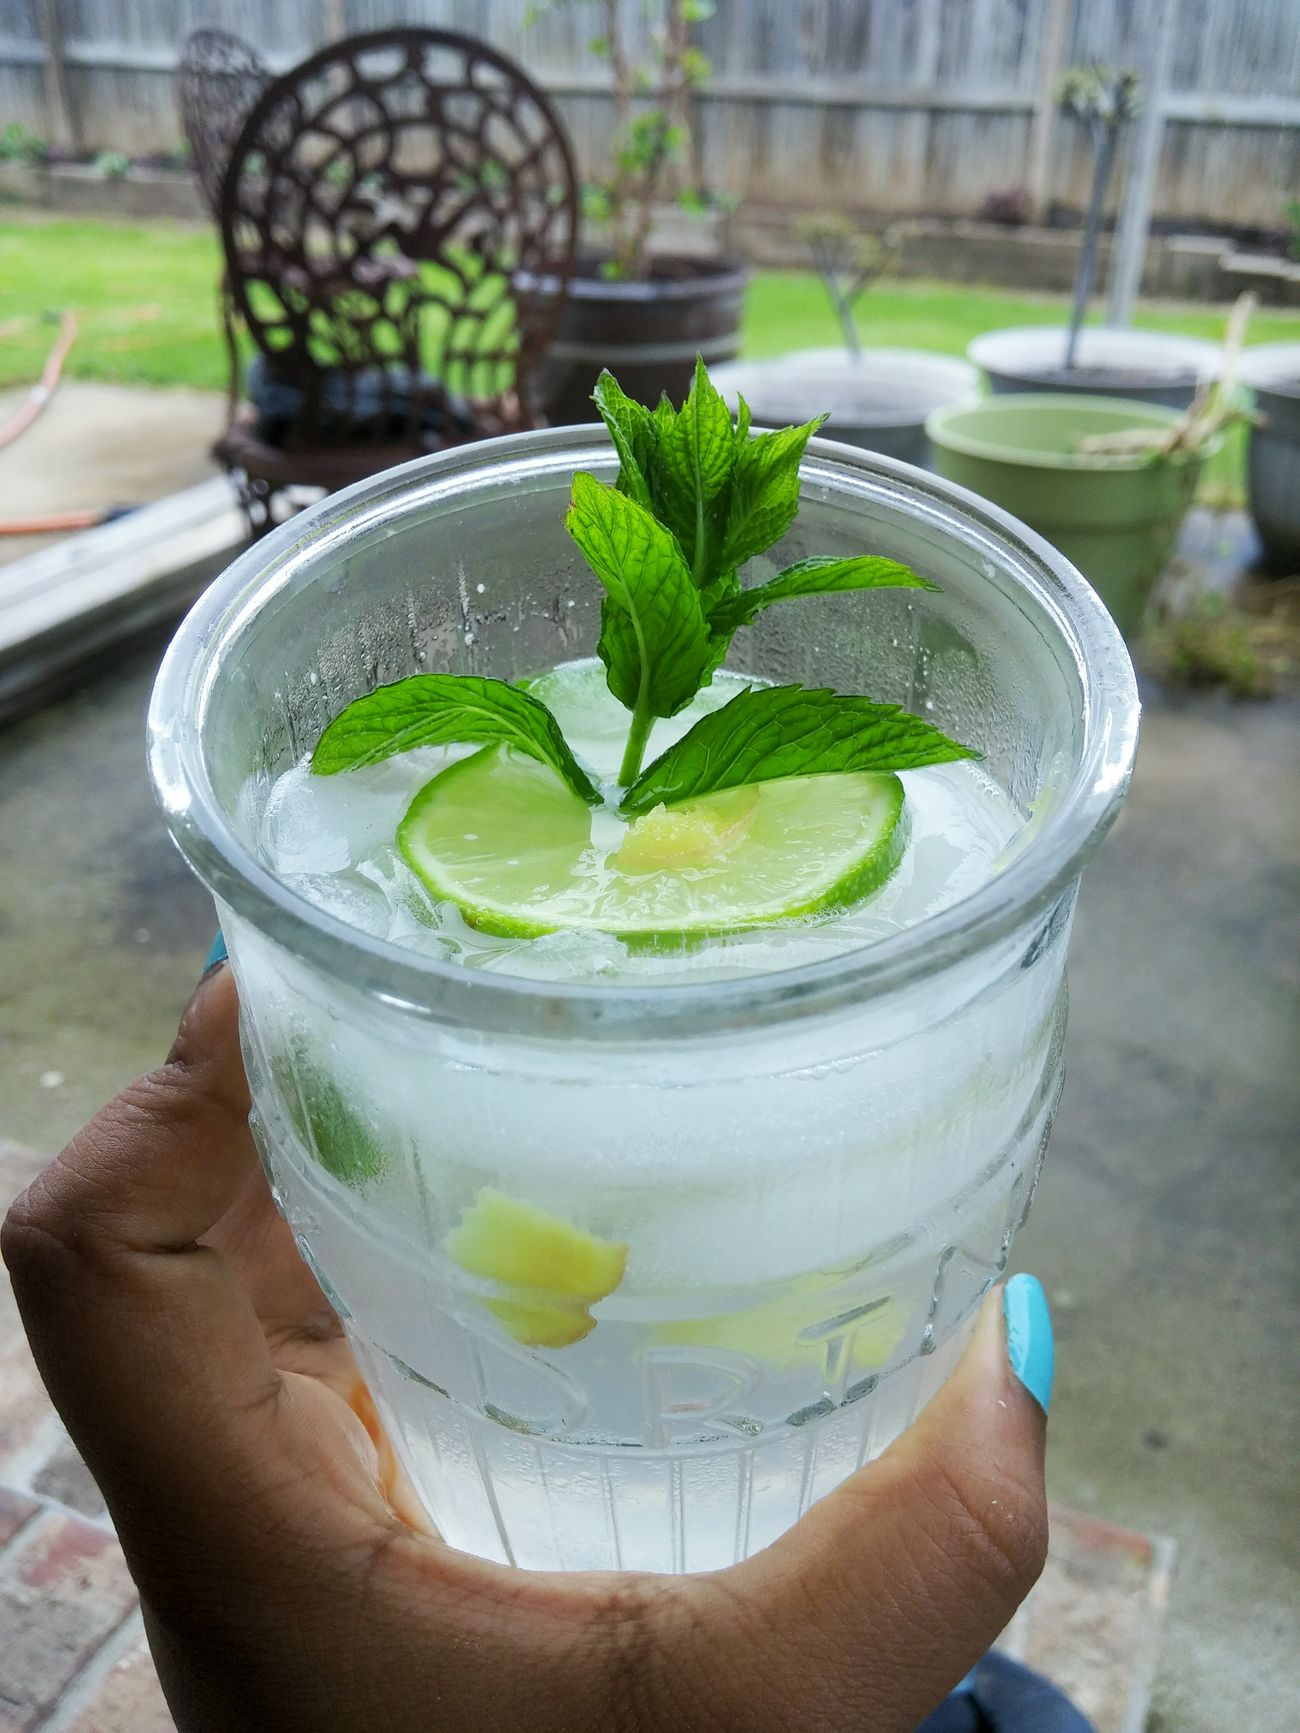 Top view : chilling in the backyard just sipping on a pretty and tasty drink Mint Leaves Food Photography Foodie Ginger Photography Glass Photo Lime Nabij Nabijuju Making A Drink Fresh I Just Thought It Looked Cool Sprite Elevated Soda Sugarygoodness The Essence Of Summer